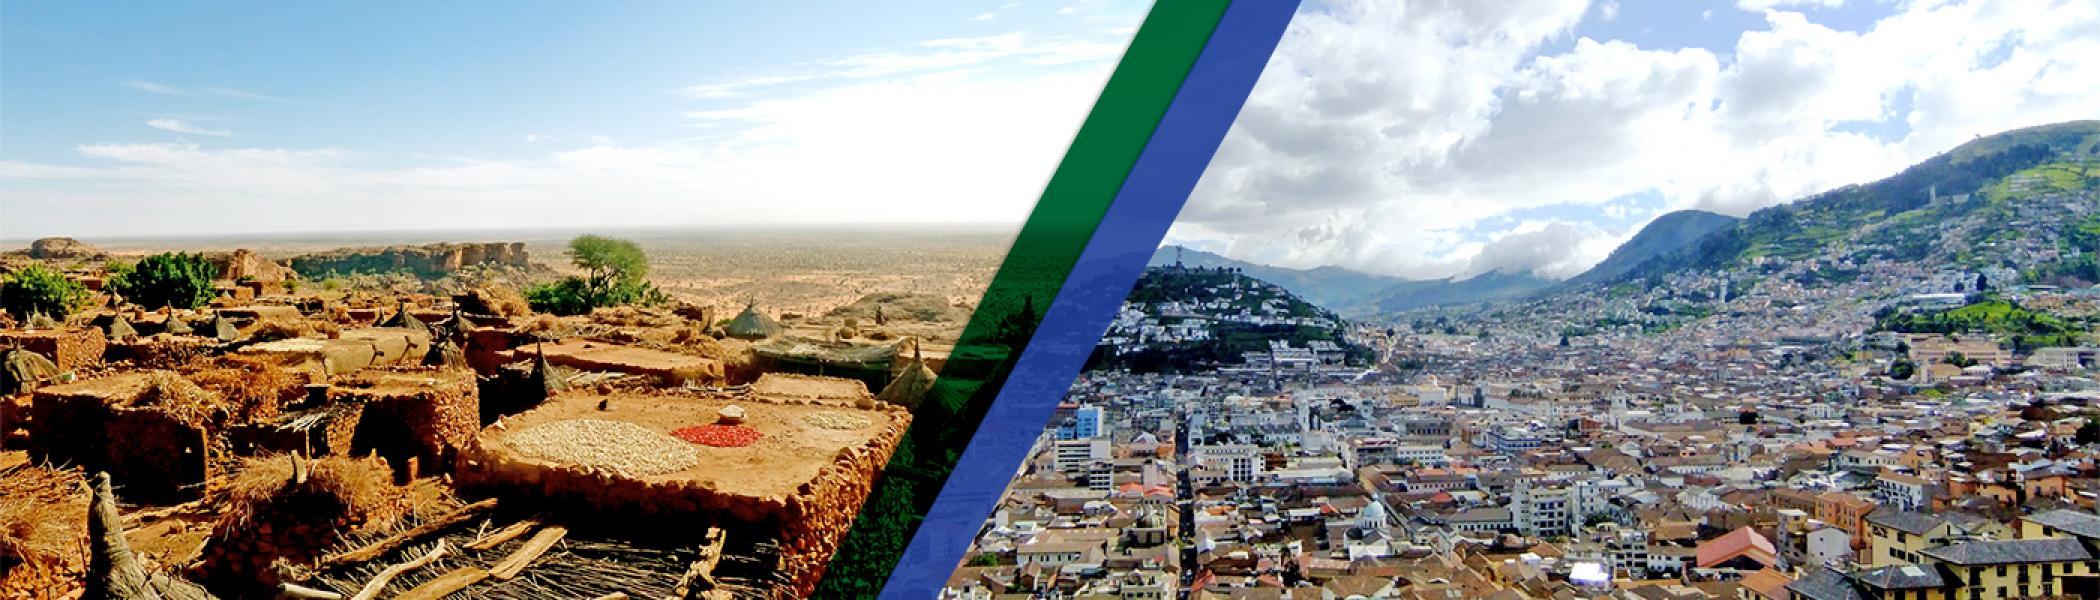 Aerial view of Ghana and Ecuador in the summer sun, separated by a green and blue vertical line